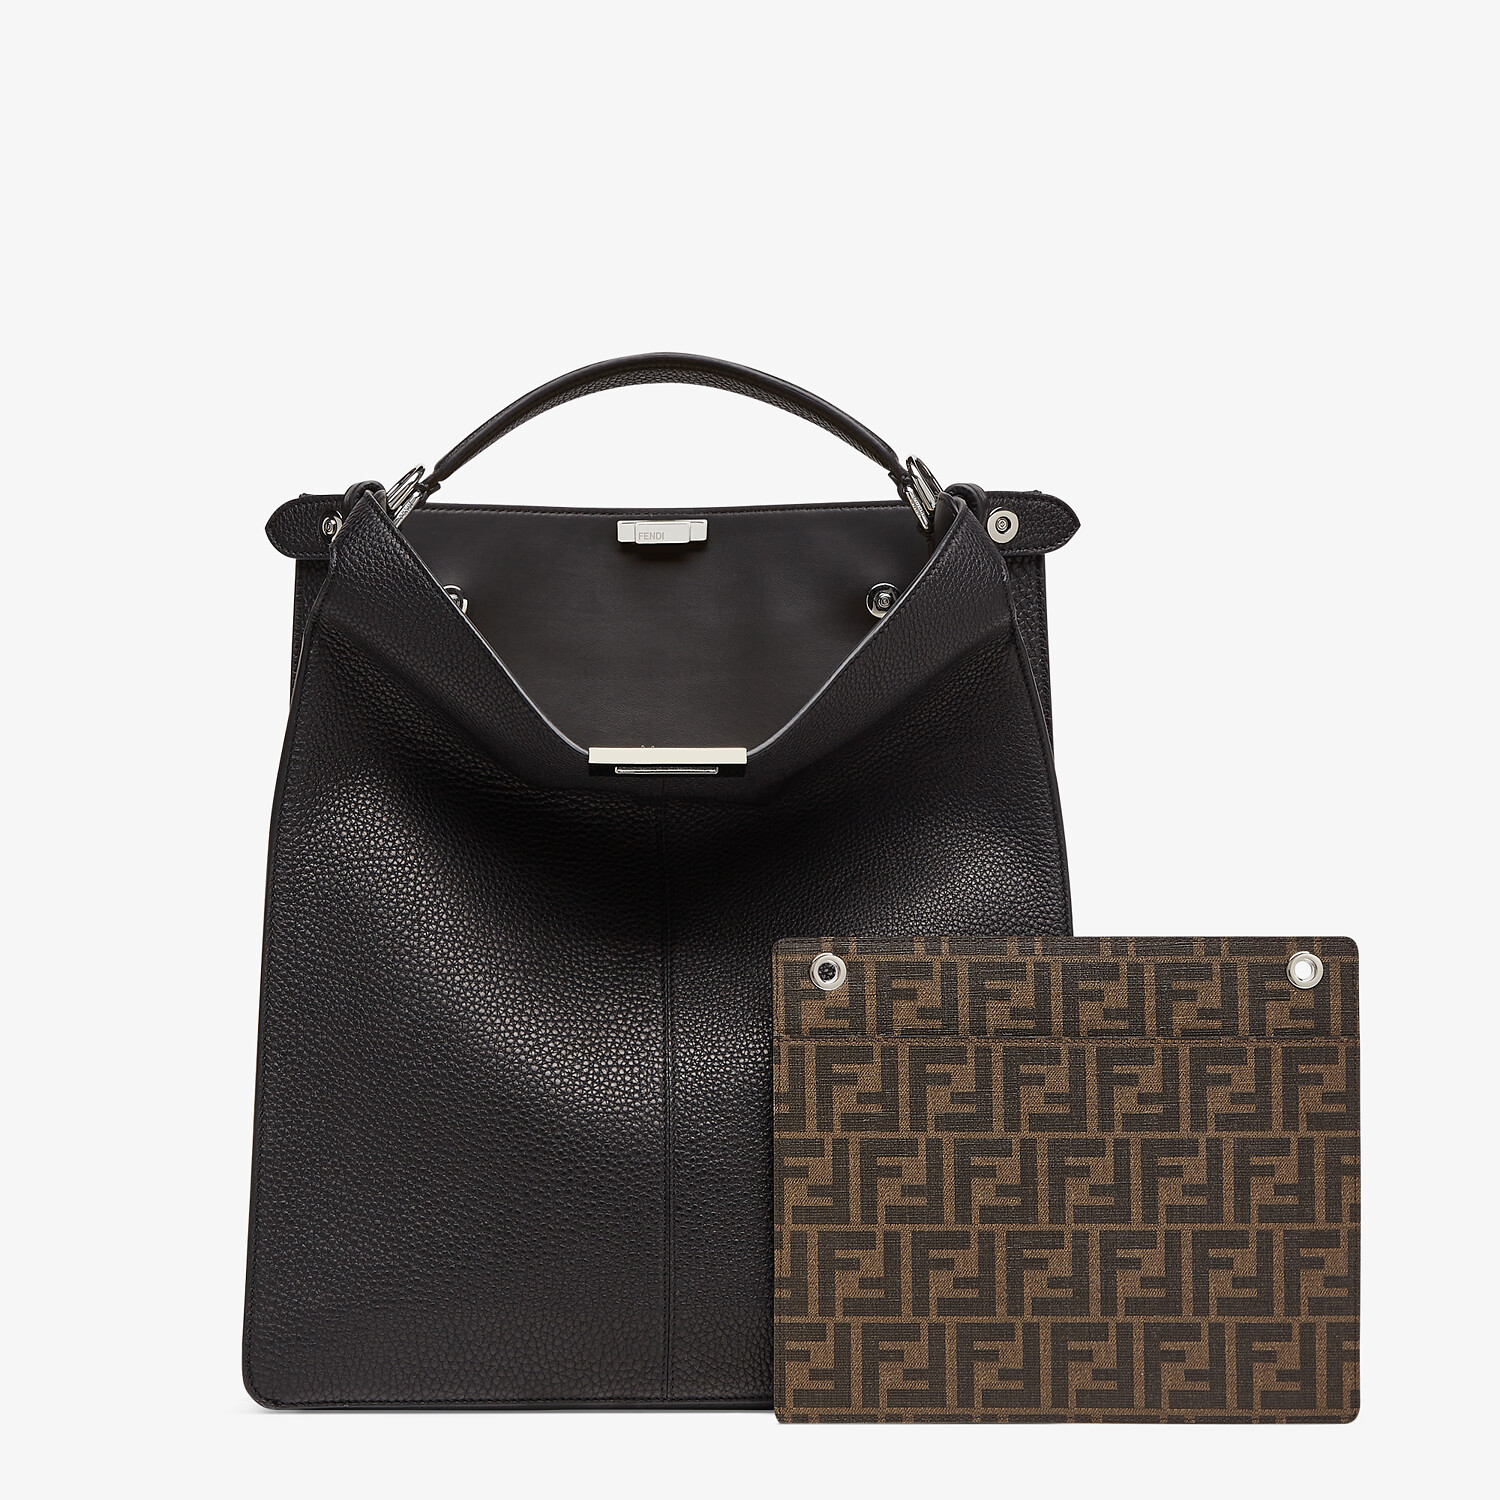 FENDI PEEKABOO ISEEU TOTE - Black leather bag - view 3 detail